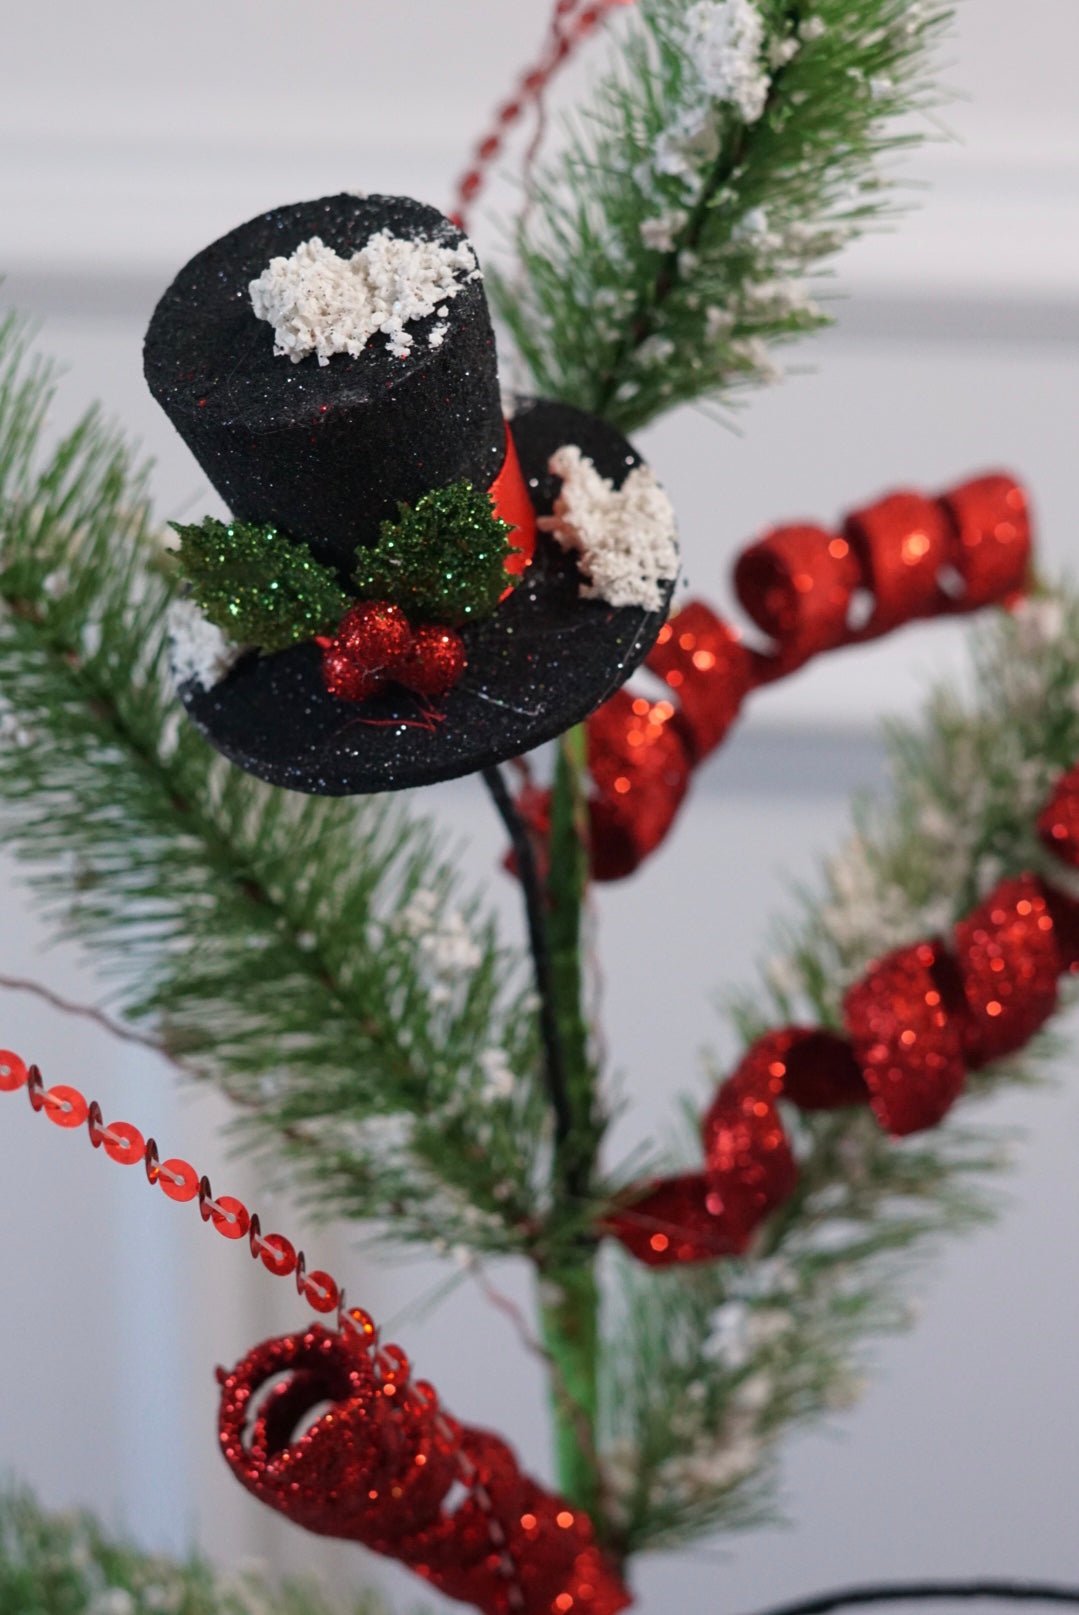 helloholidays,Snowman Hat Flocked Pine Spray,Liberty,Spray